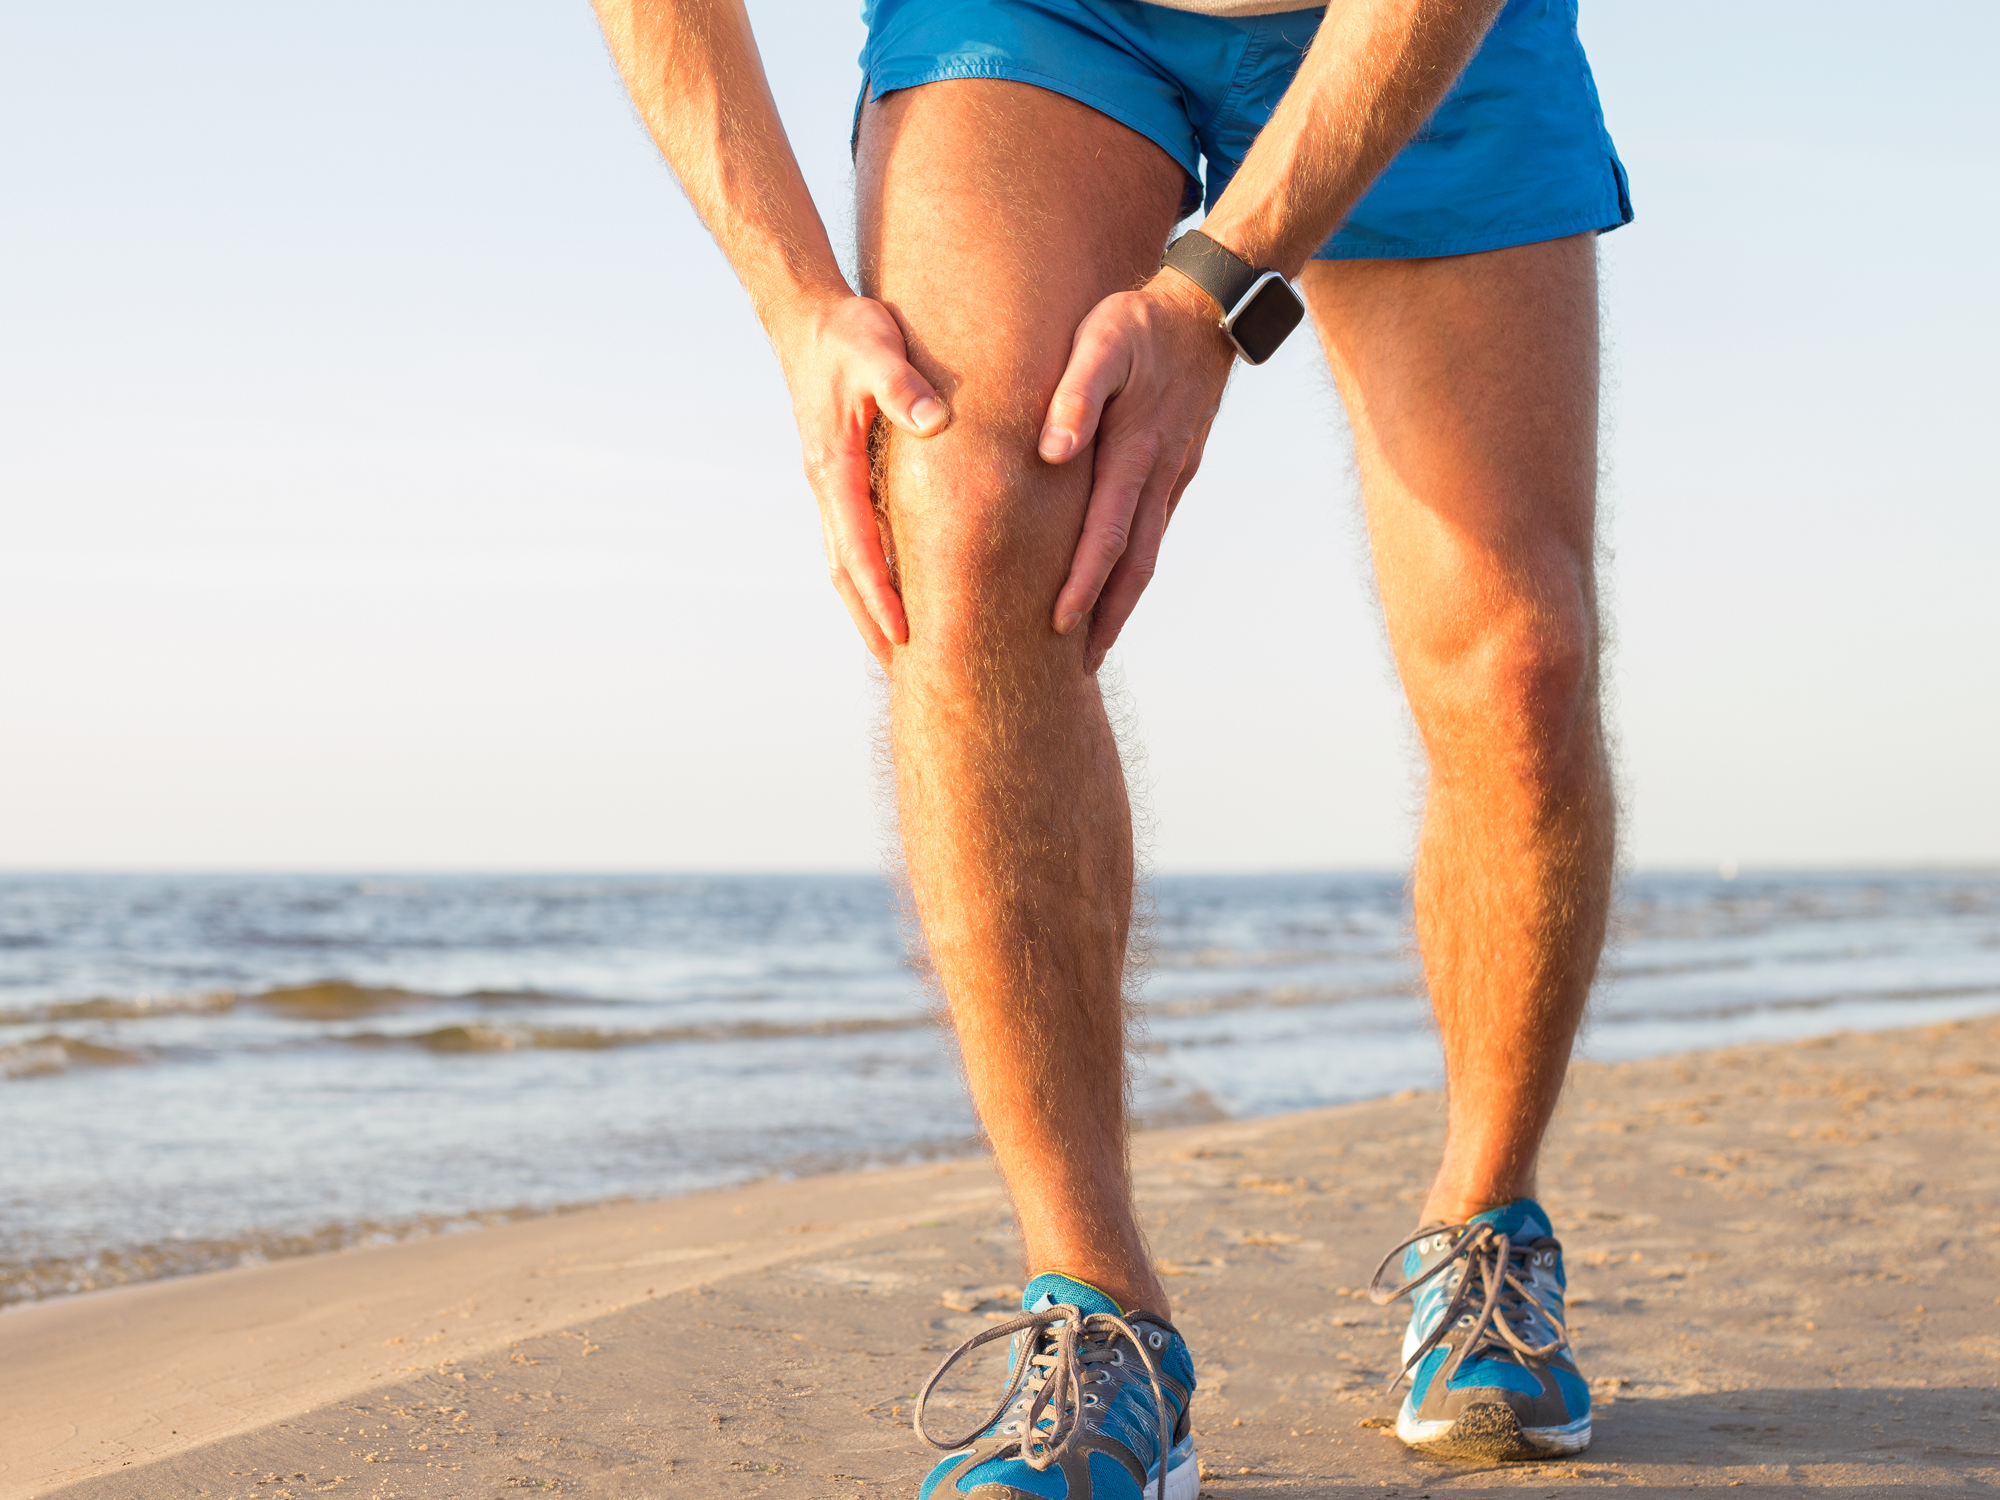 The 5 best exercises to get rid of chronic knee pain